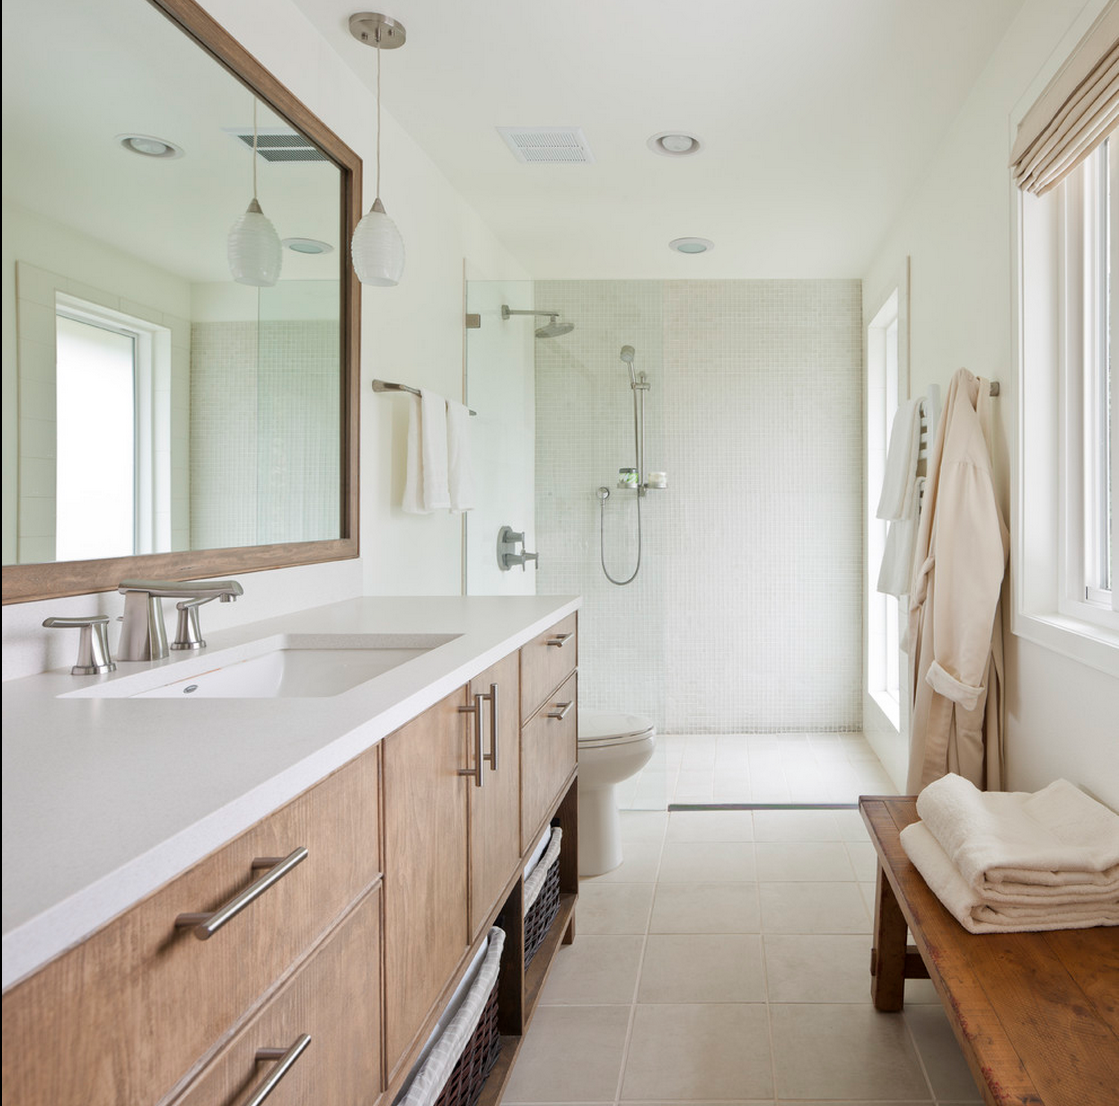 Bathrooms Contemporary Wightman Construction Inc